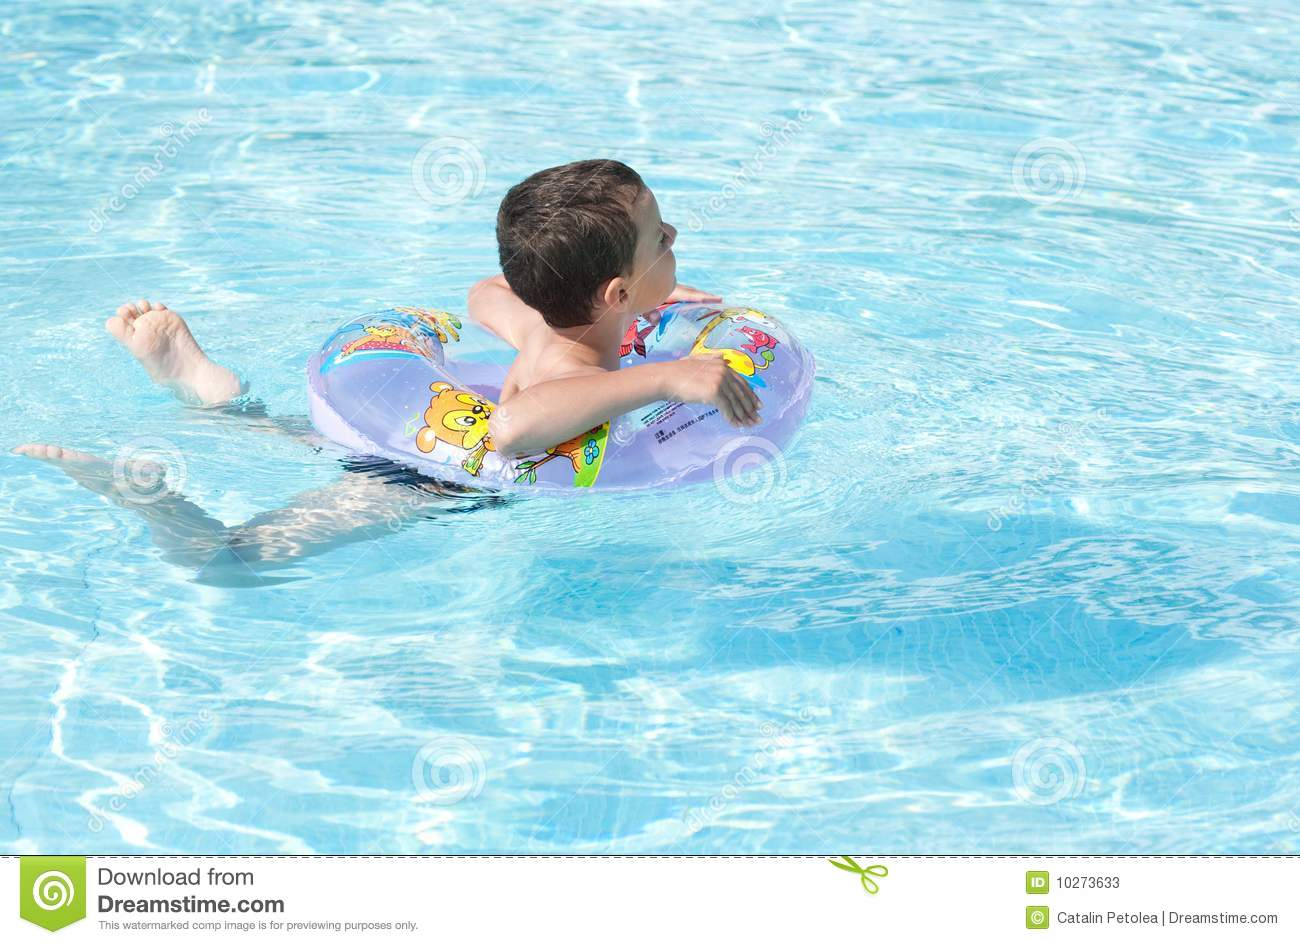 Cute kid swimming in pool stock photos image 10273633 for Cute pool pictures